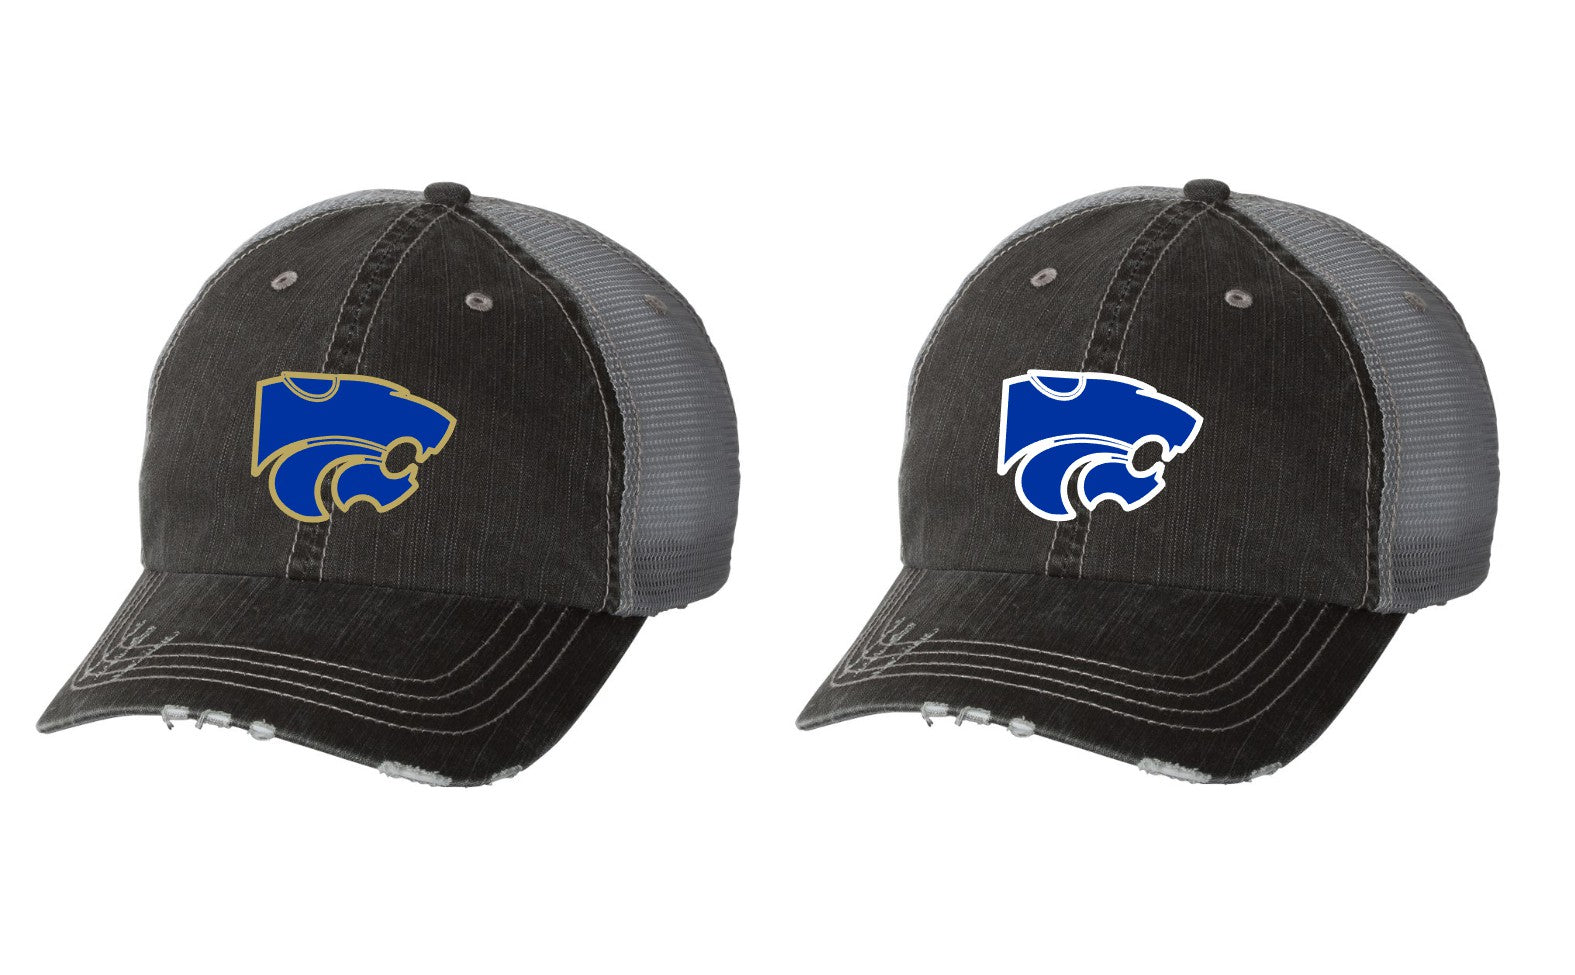 Wildcat Distressed Trucker